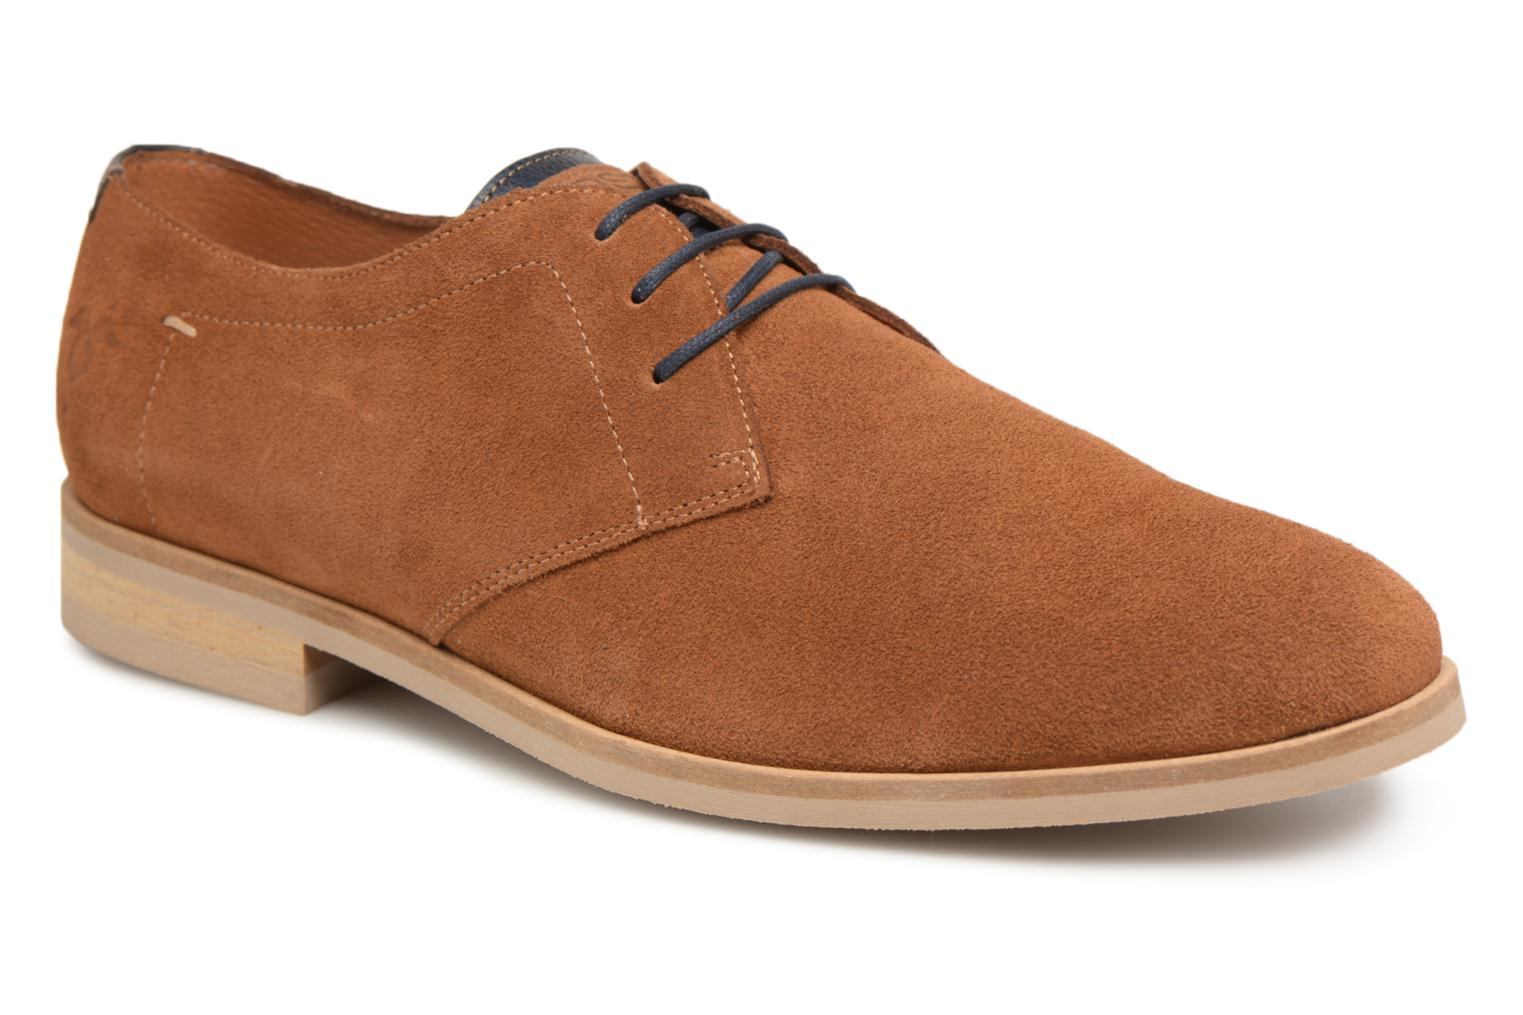 Marques Chaussure homme Kost homme Acteur 5A Marine